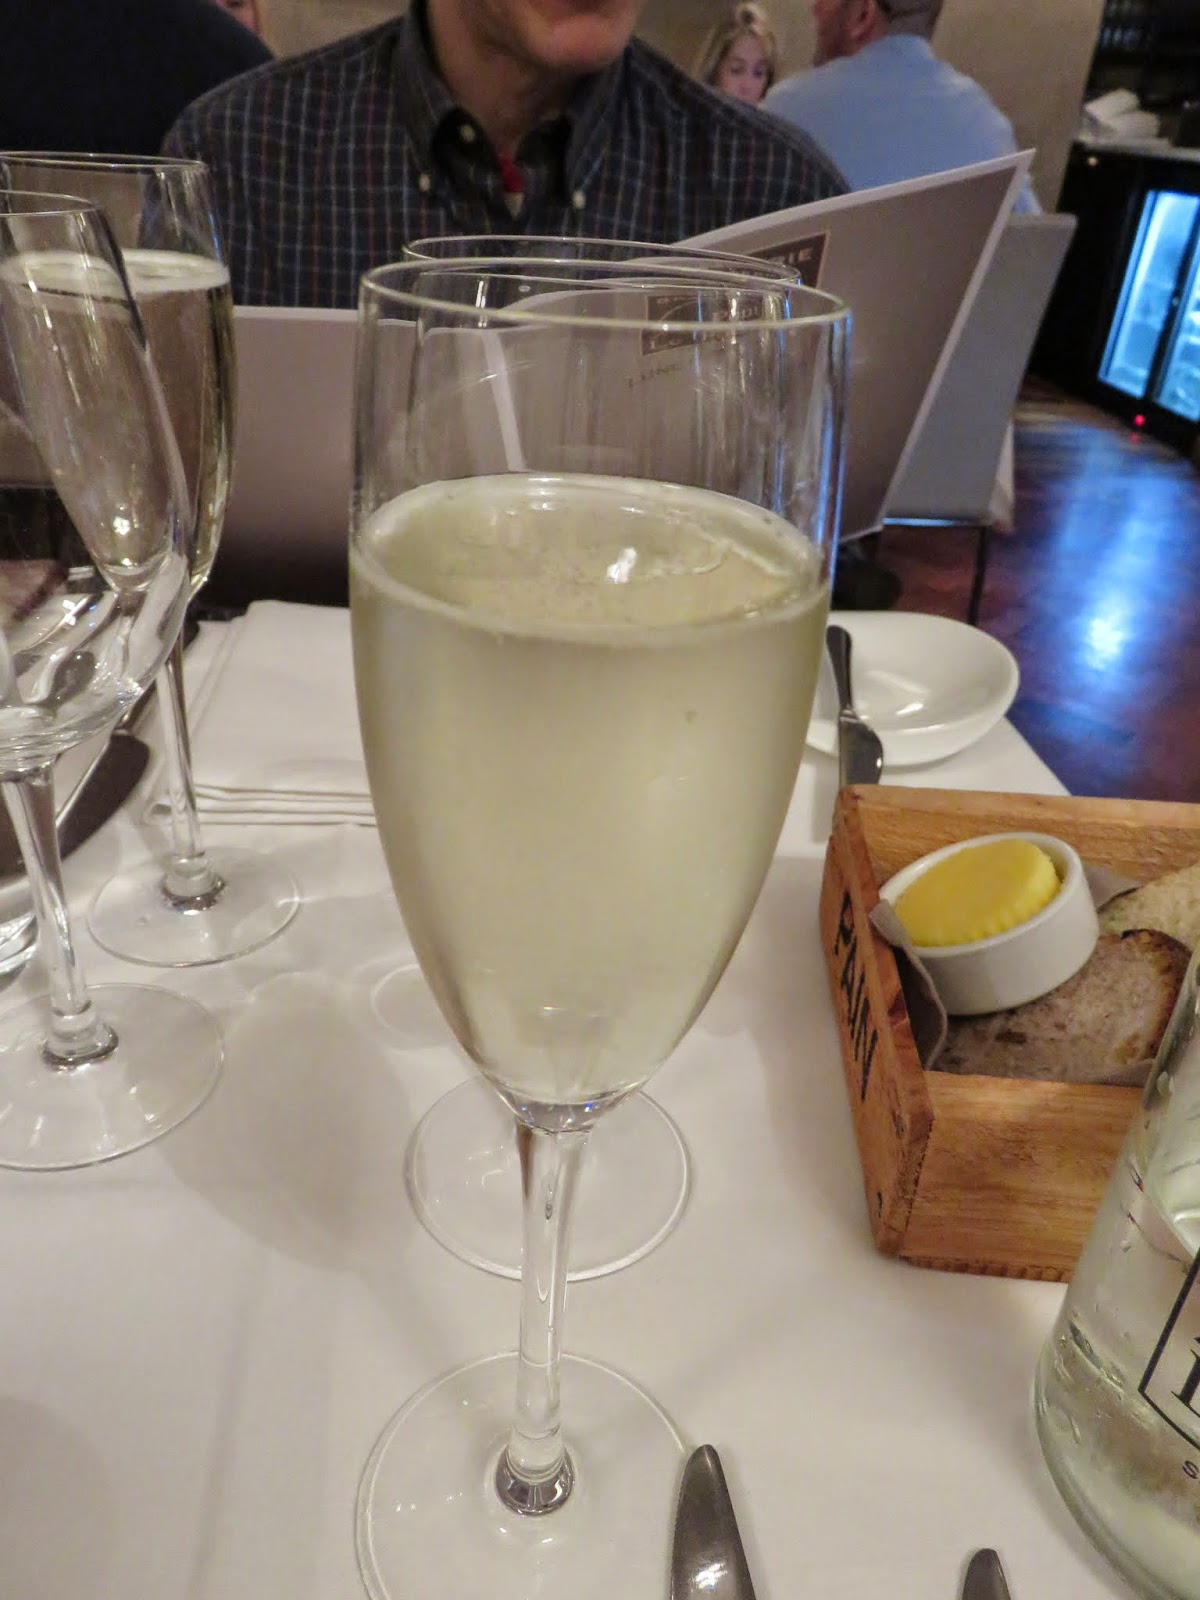 Glass of Prosecco at Brasserie Le Pont in Dublin